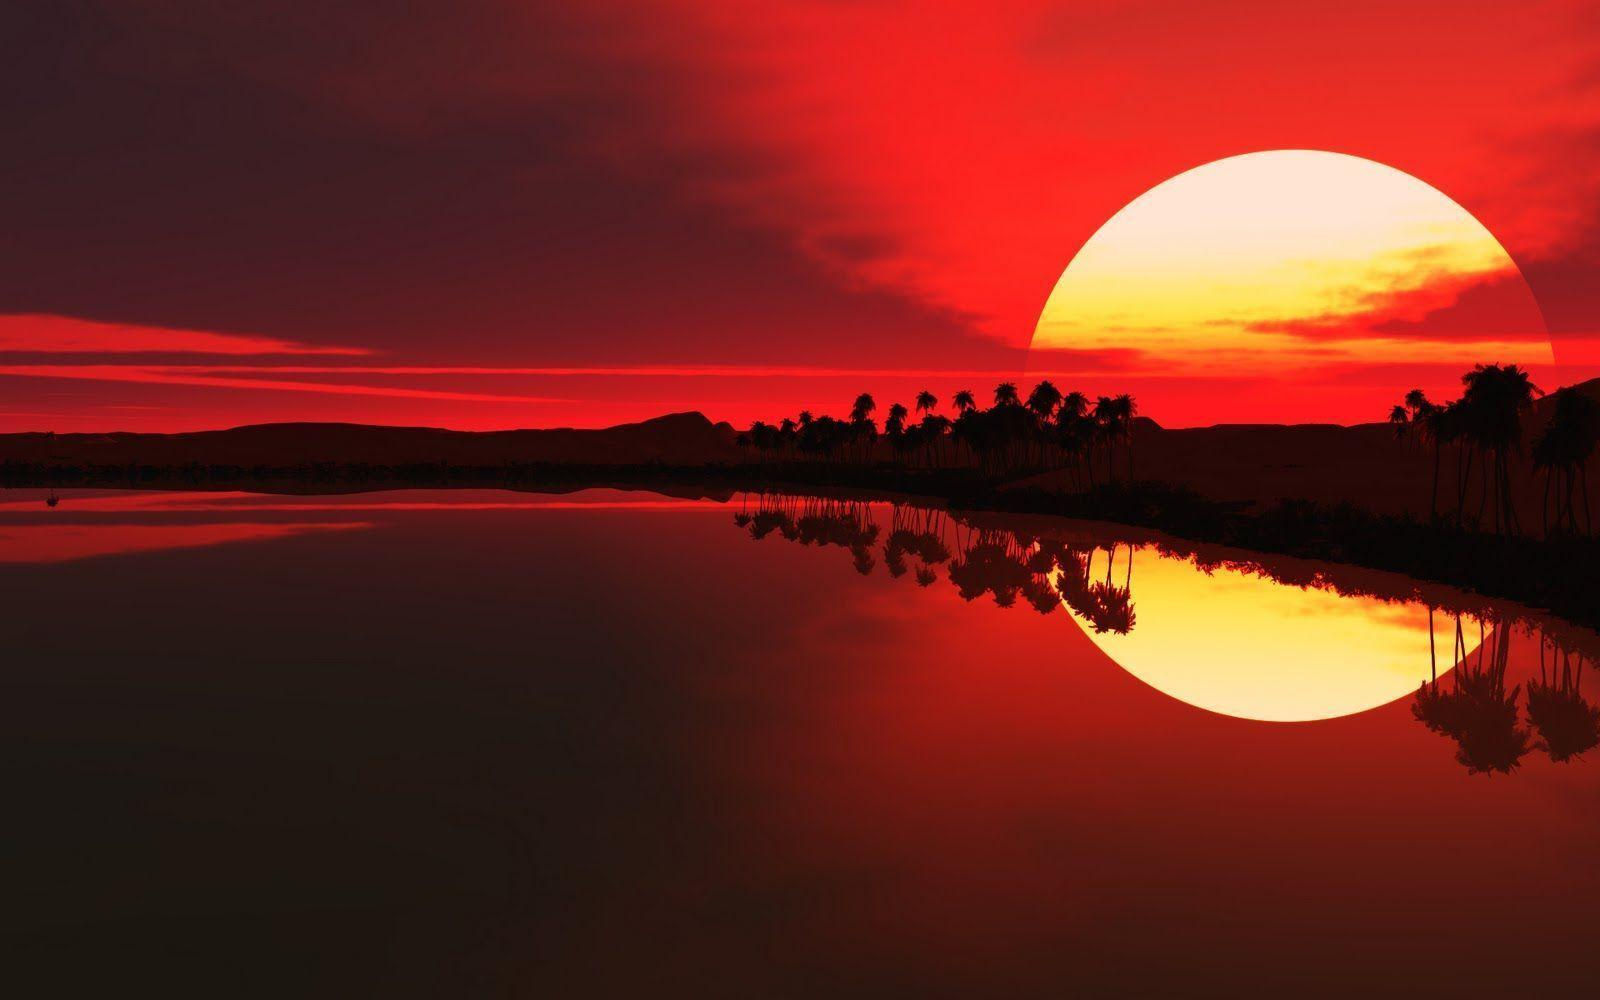 Sunset Wallpaper 4 16975 HD Wallpaper | Wallroro.